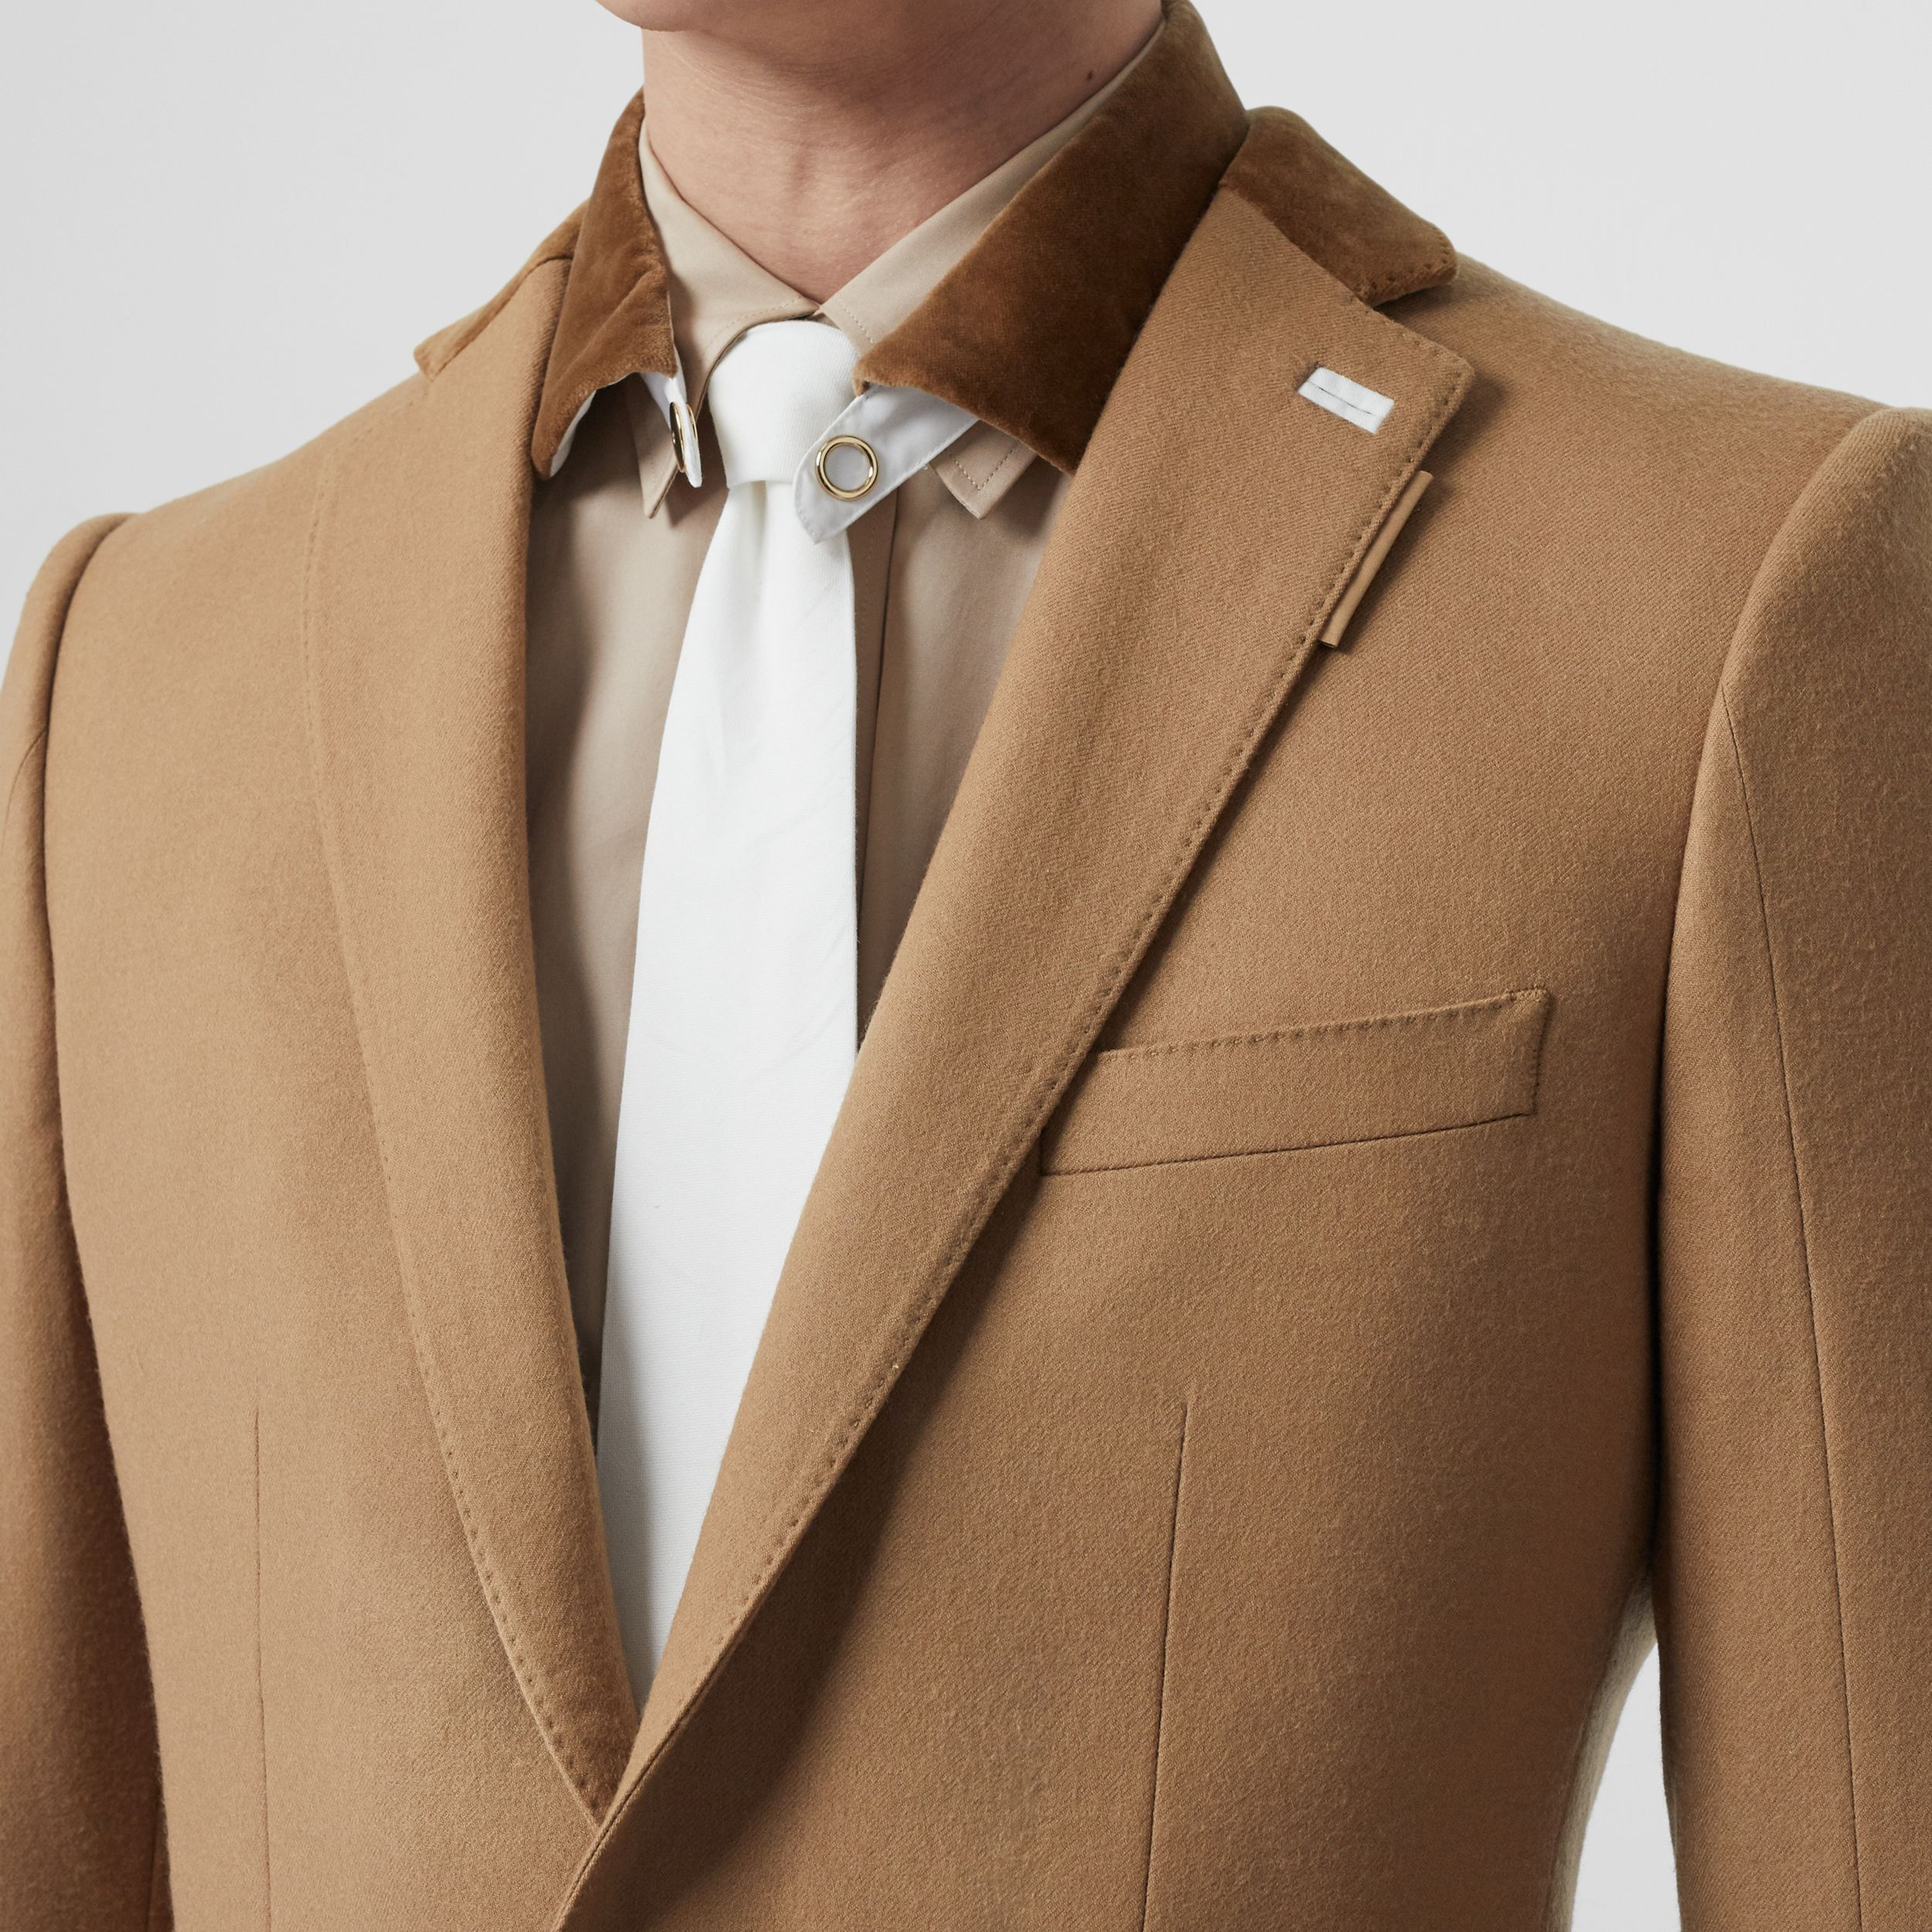 English Fit Velvet Collar Wool Flannel Tailored Jacket in Warm Camel - Men | Burberry - 2